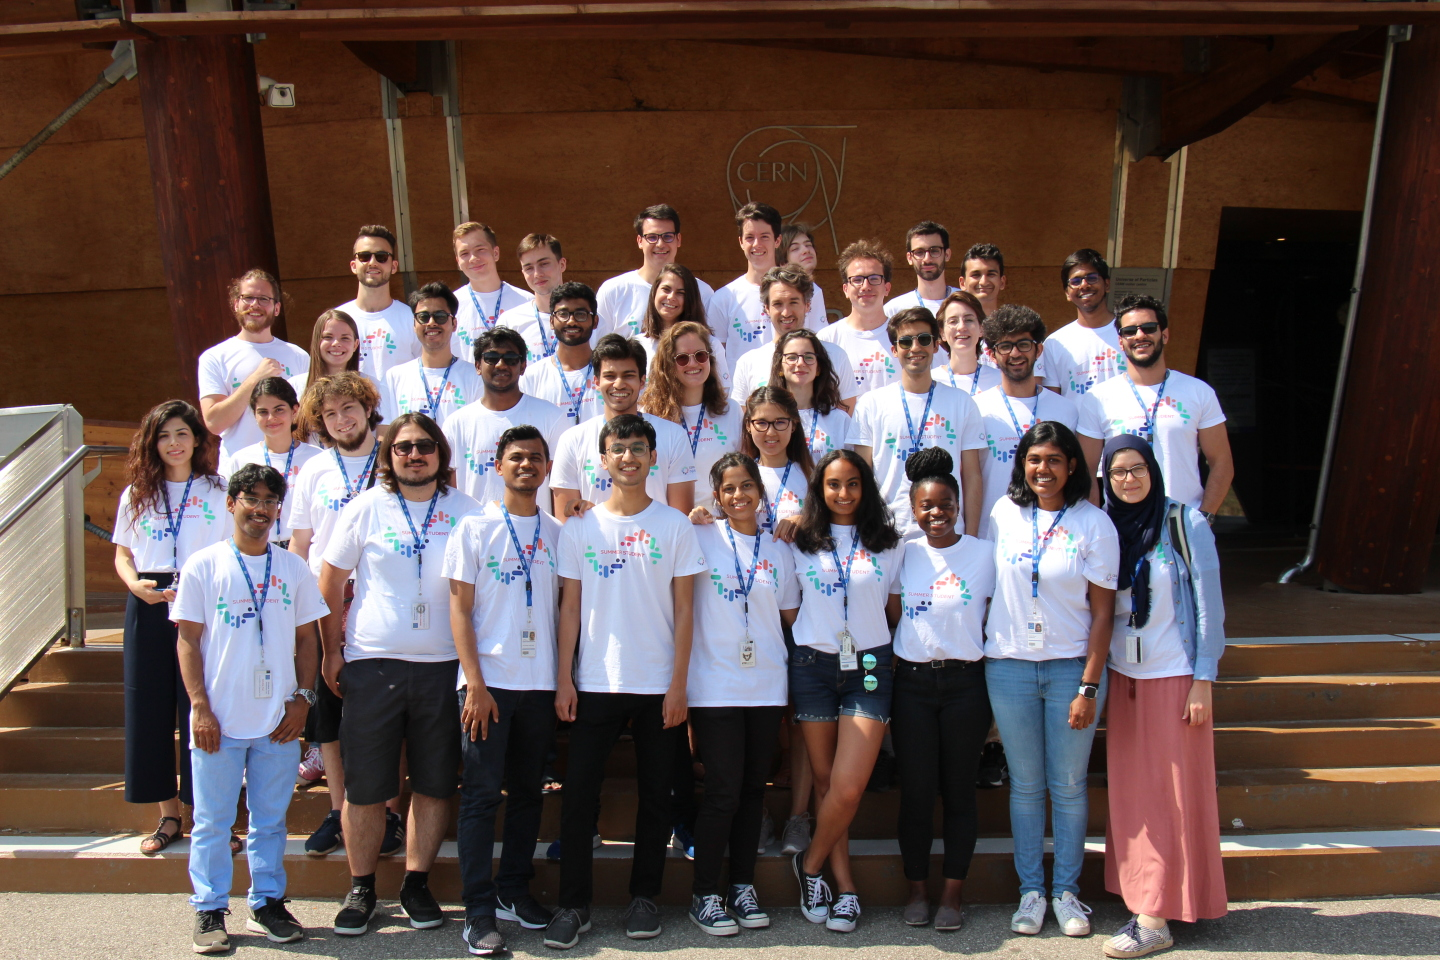 On Tuesday 13 August and Thursday 15 August, the CERN openlab summer students 2019 will present their work at a dedicated public Lighting Talk session